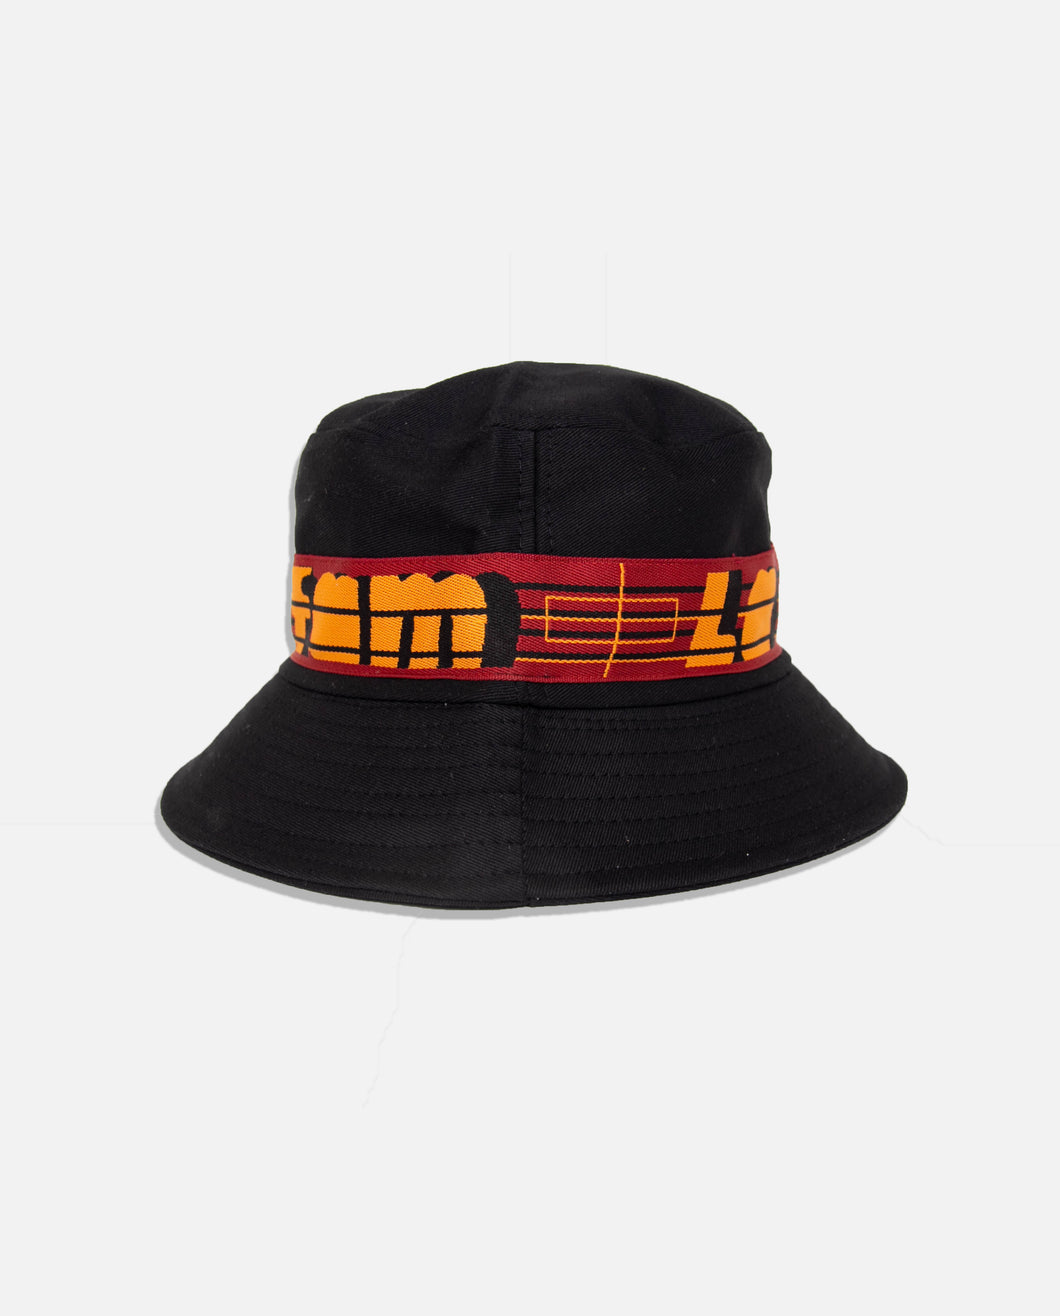 BUCKET HAT BLACK - La Fam Amsterdam